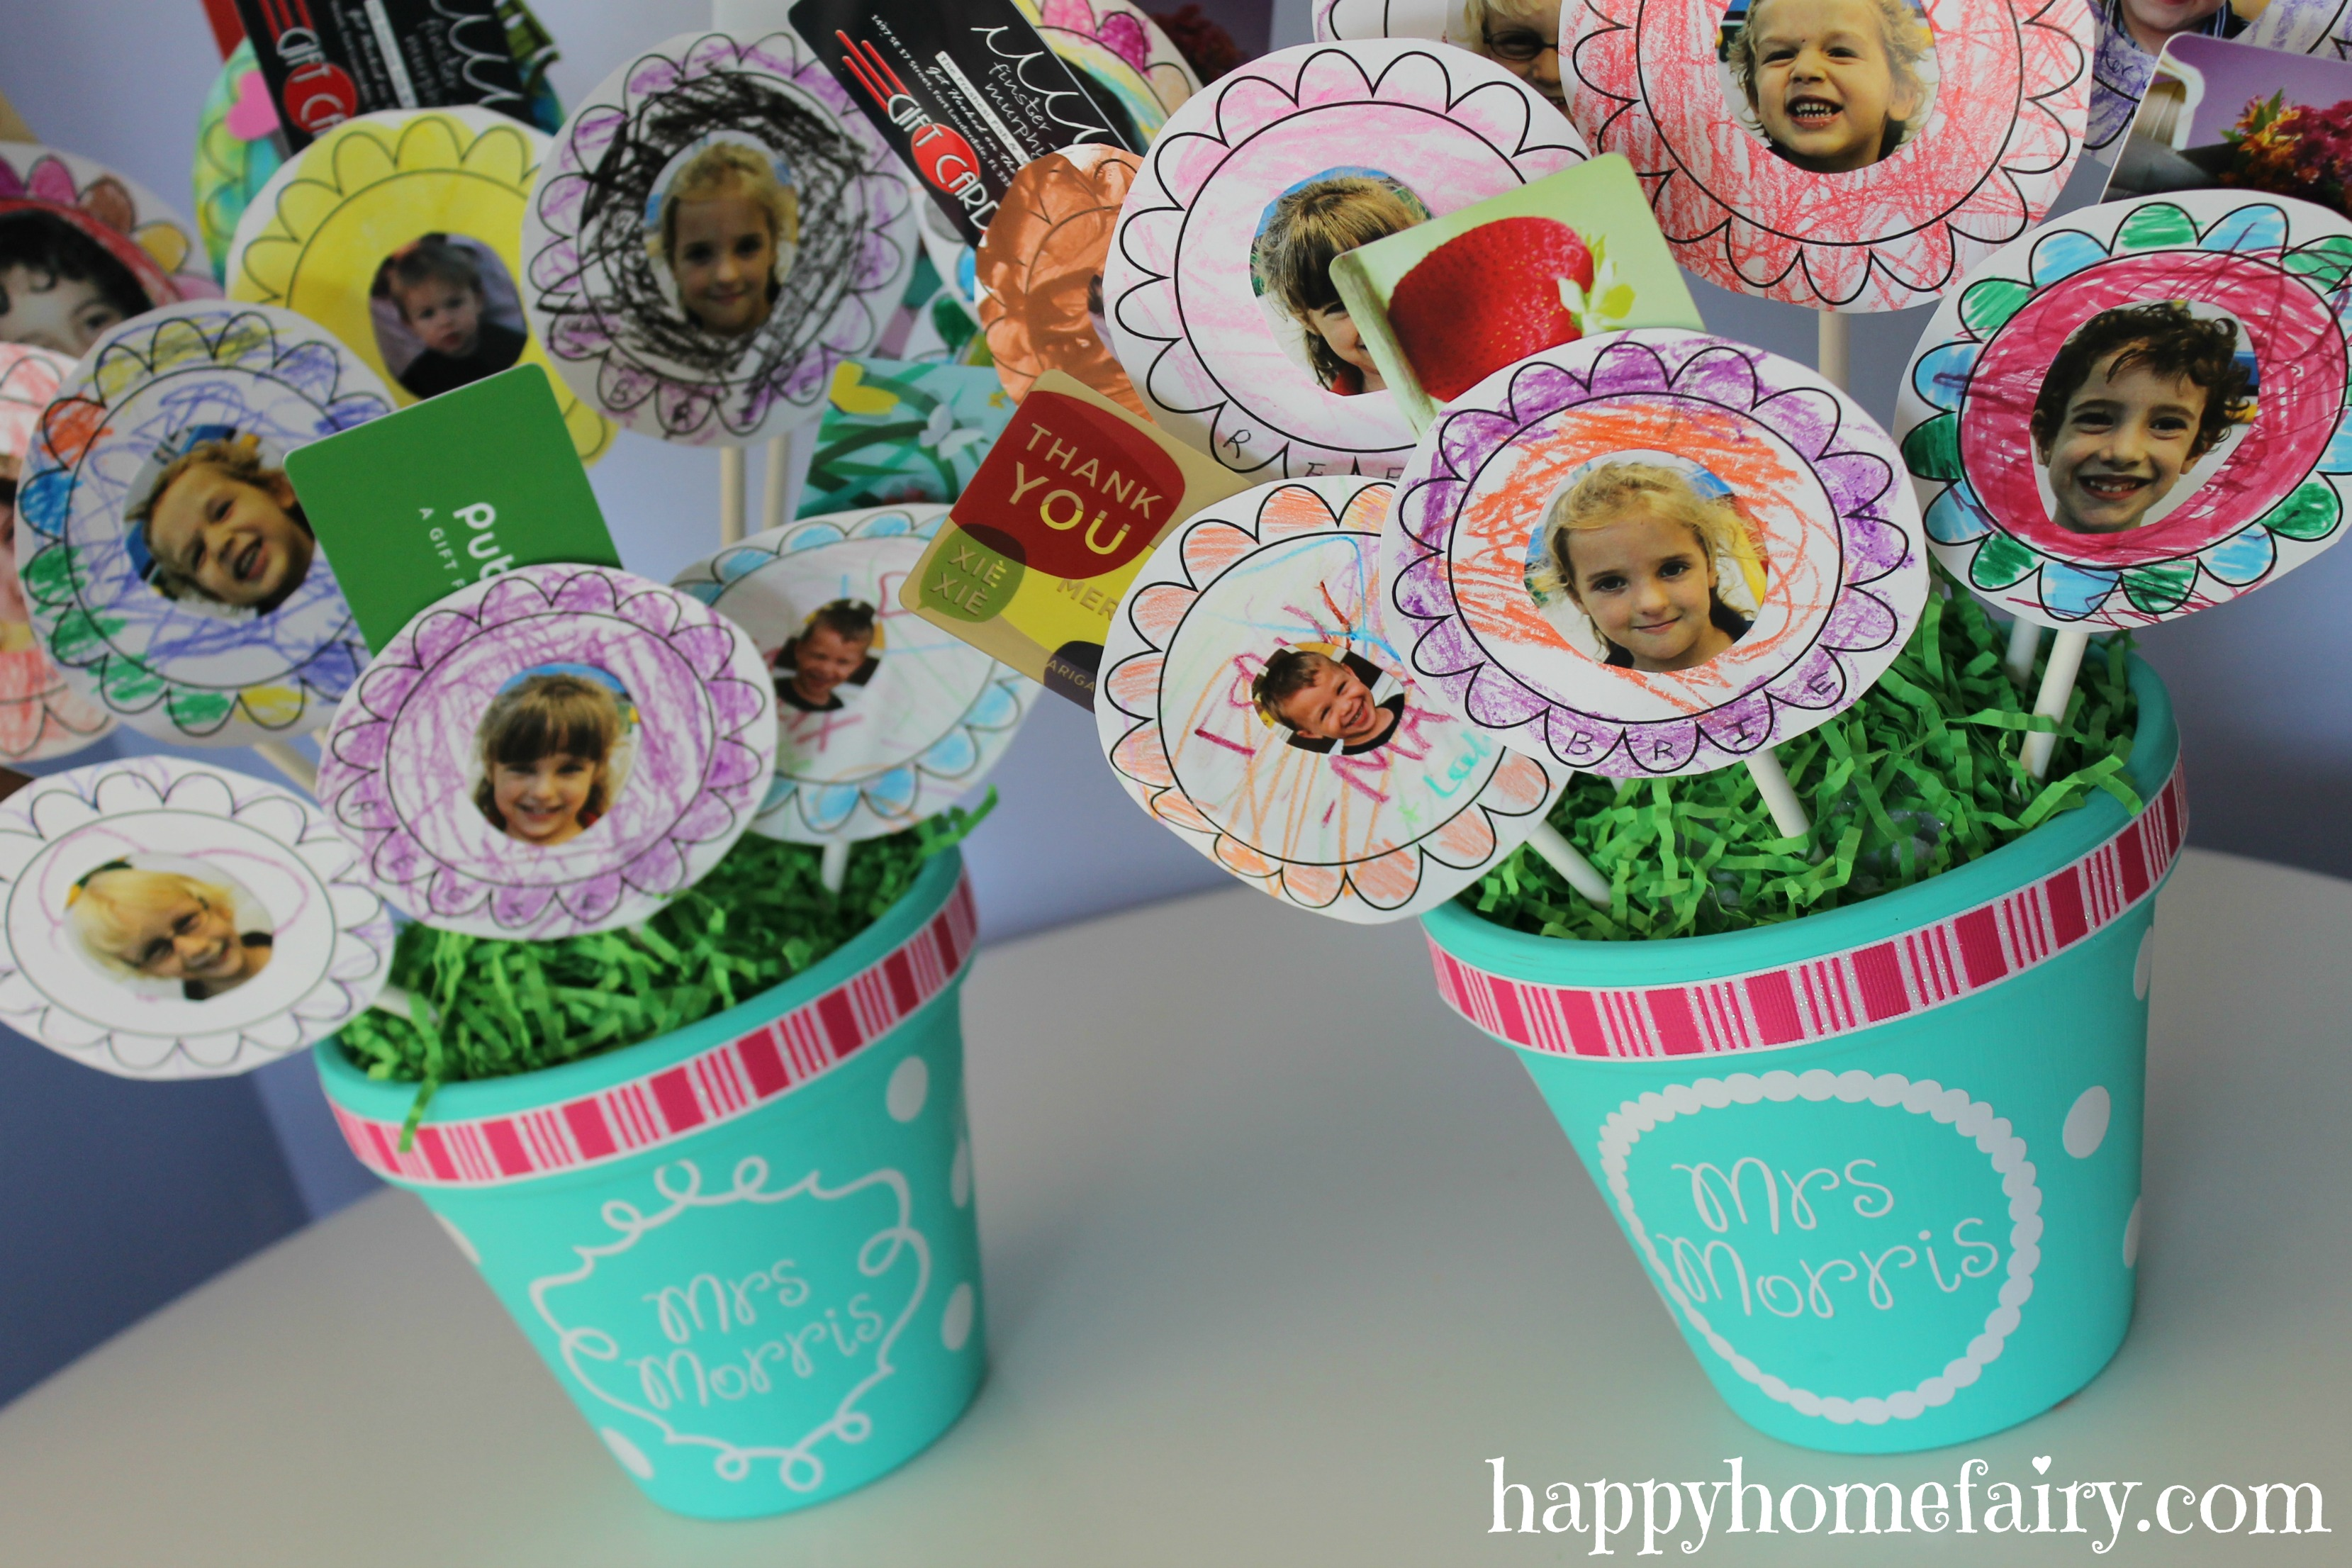 Flower Gifts For Teachers - Flowers Ideas